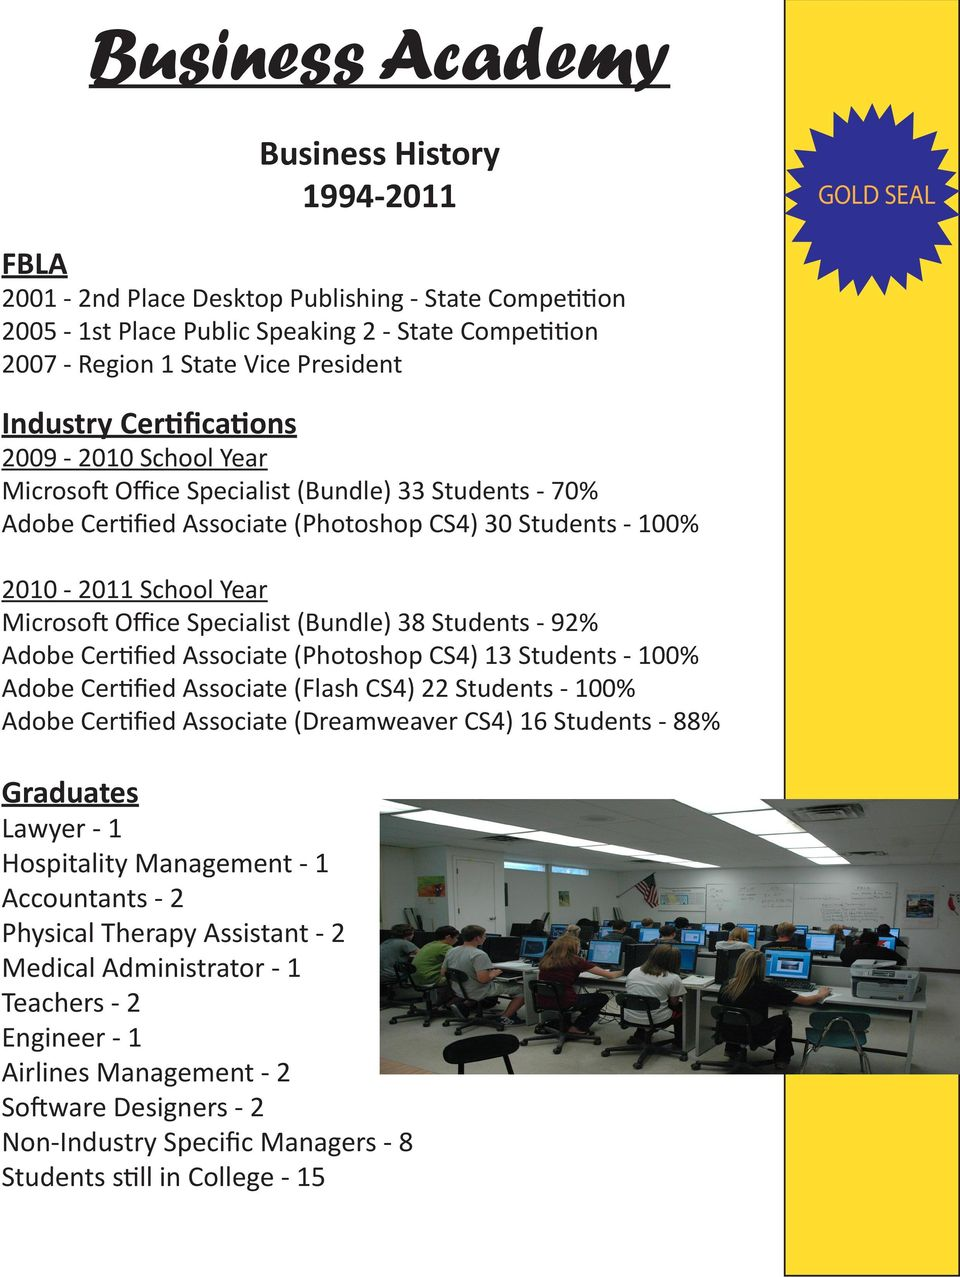 Office Specialist (Bundle) 38 Students - 92% Adobe Certified Associate (Photoshop CS4) 13 Students - 100% Adobe Certified Associate (Flash CS4) 22 Students - 100% Adobe Certified Associate